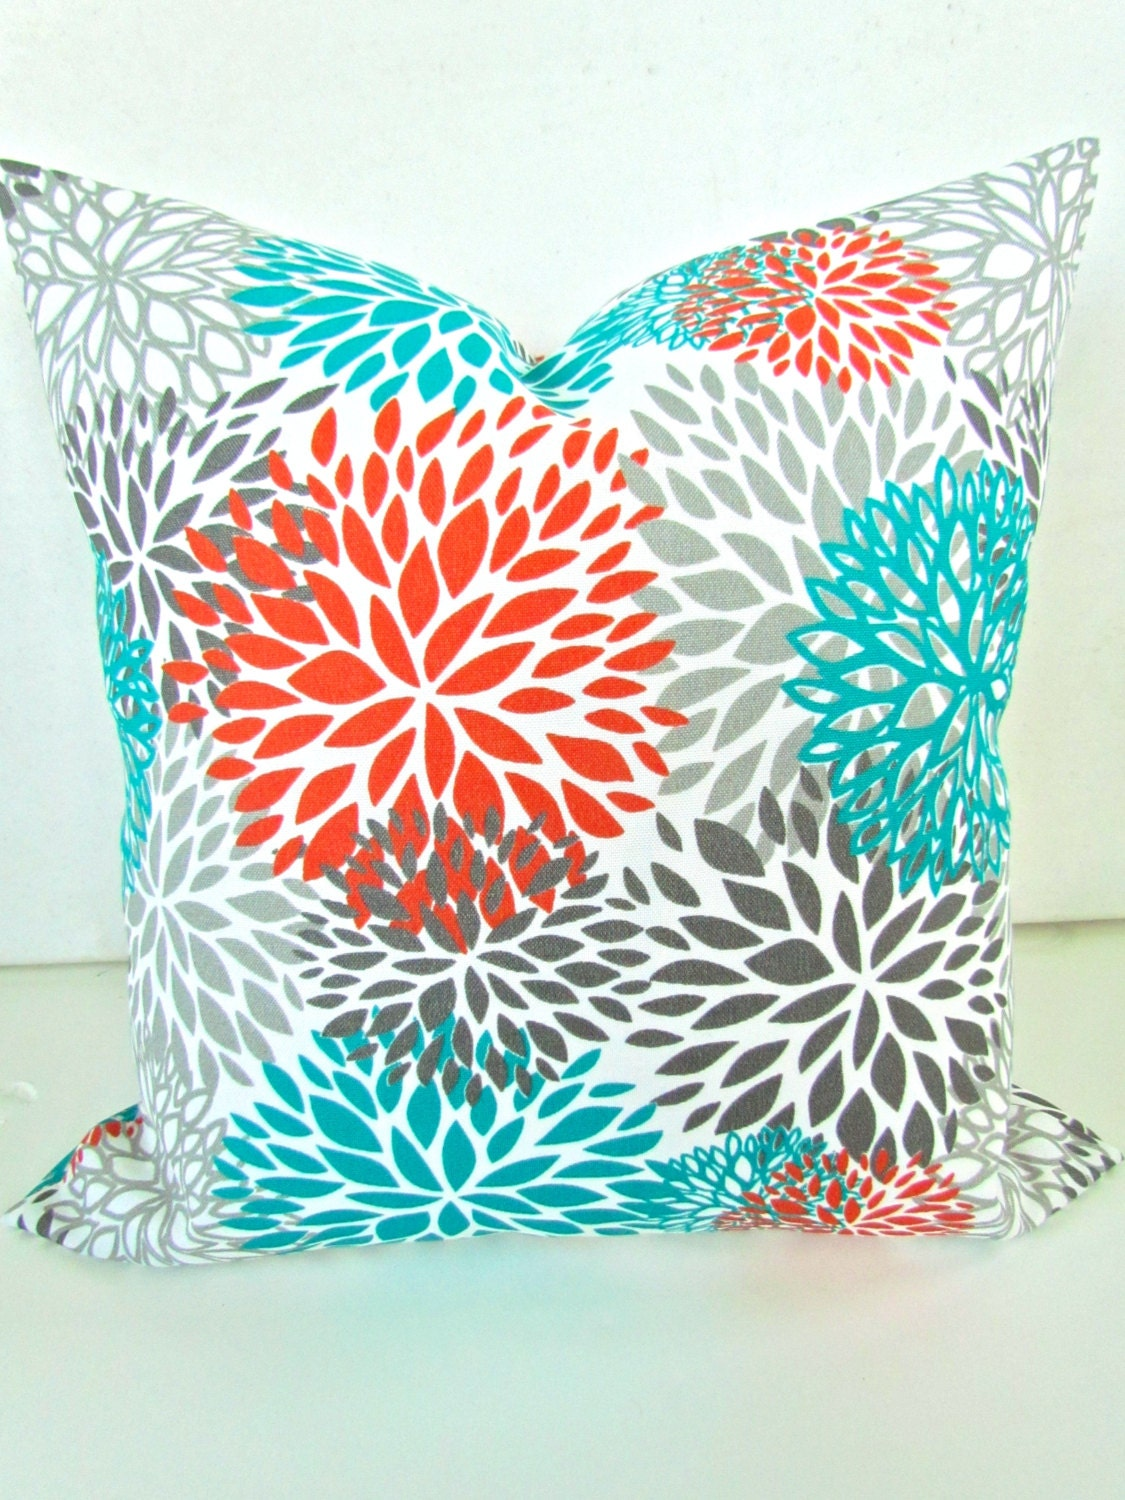 Throw Pillow Covers Teal : PILLOWS Orange Teal Throw Pillow Covers Outdoor Teal Turquoise